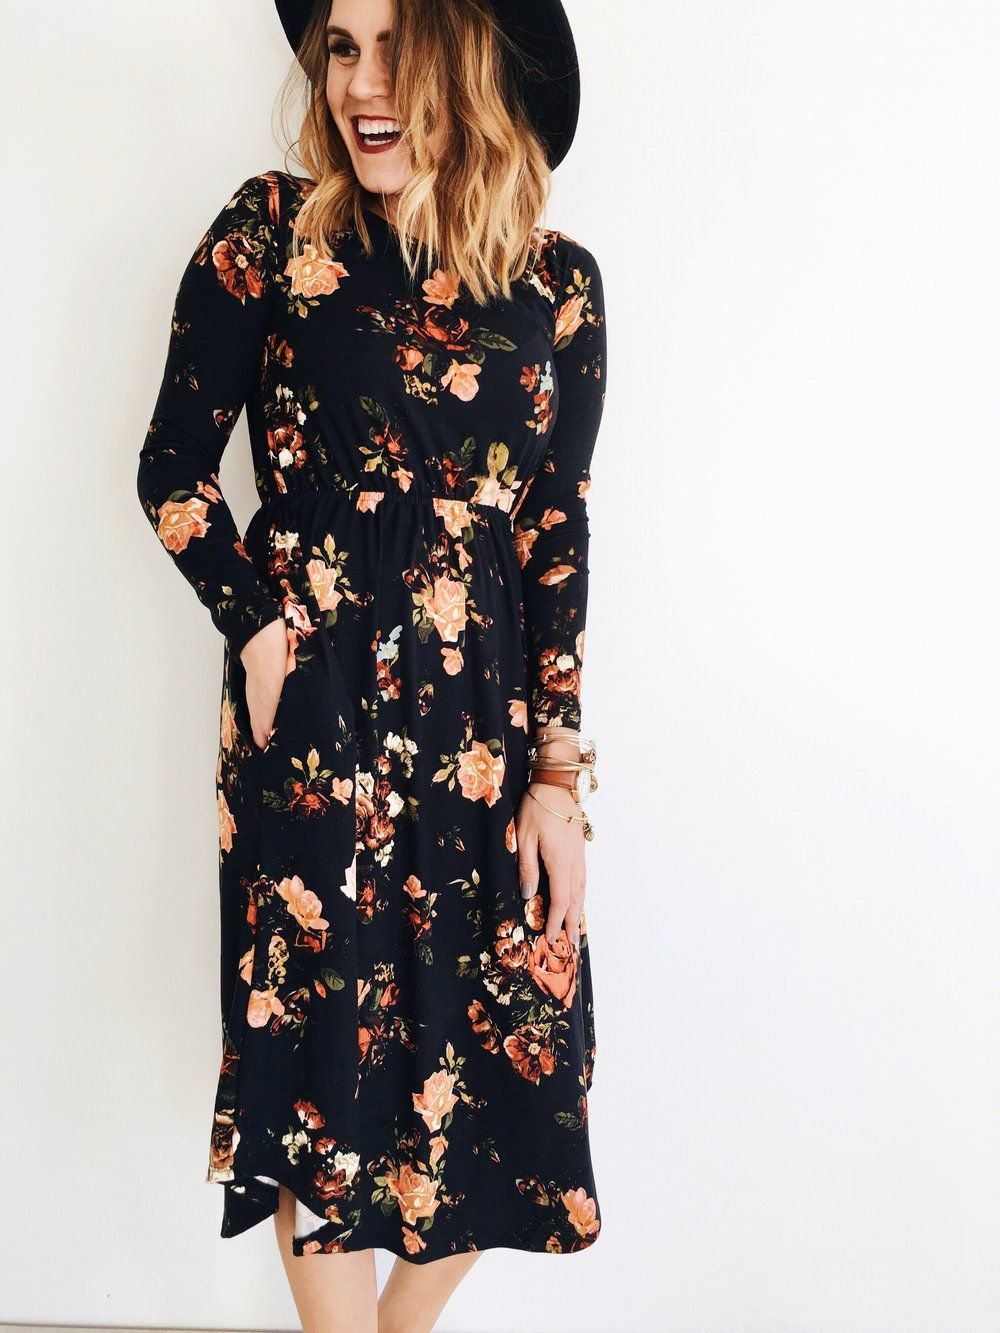 Love everything about this dress and how it could jump ...